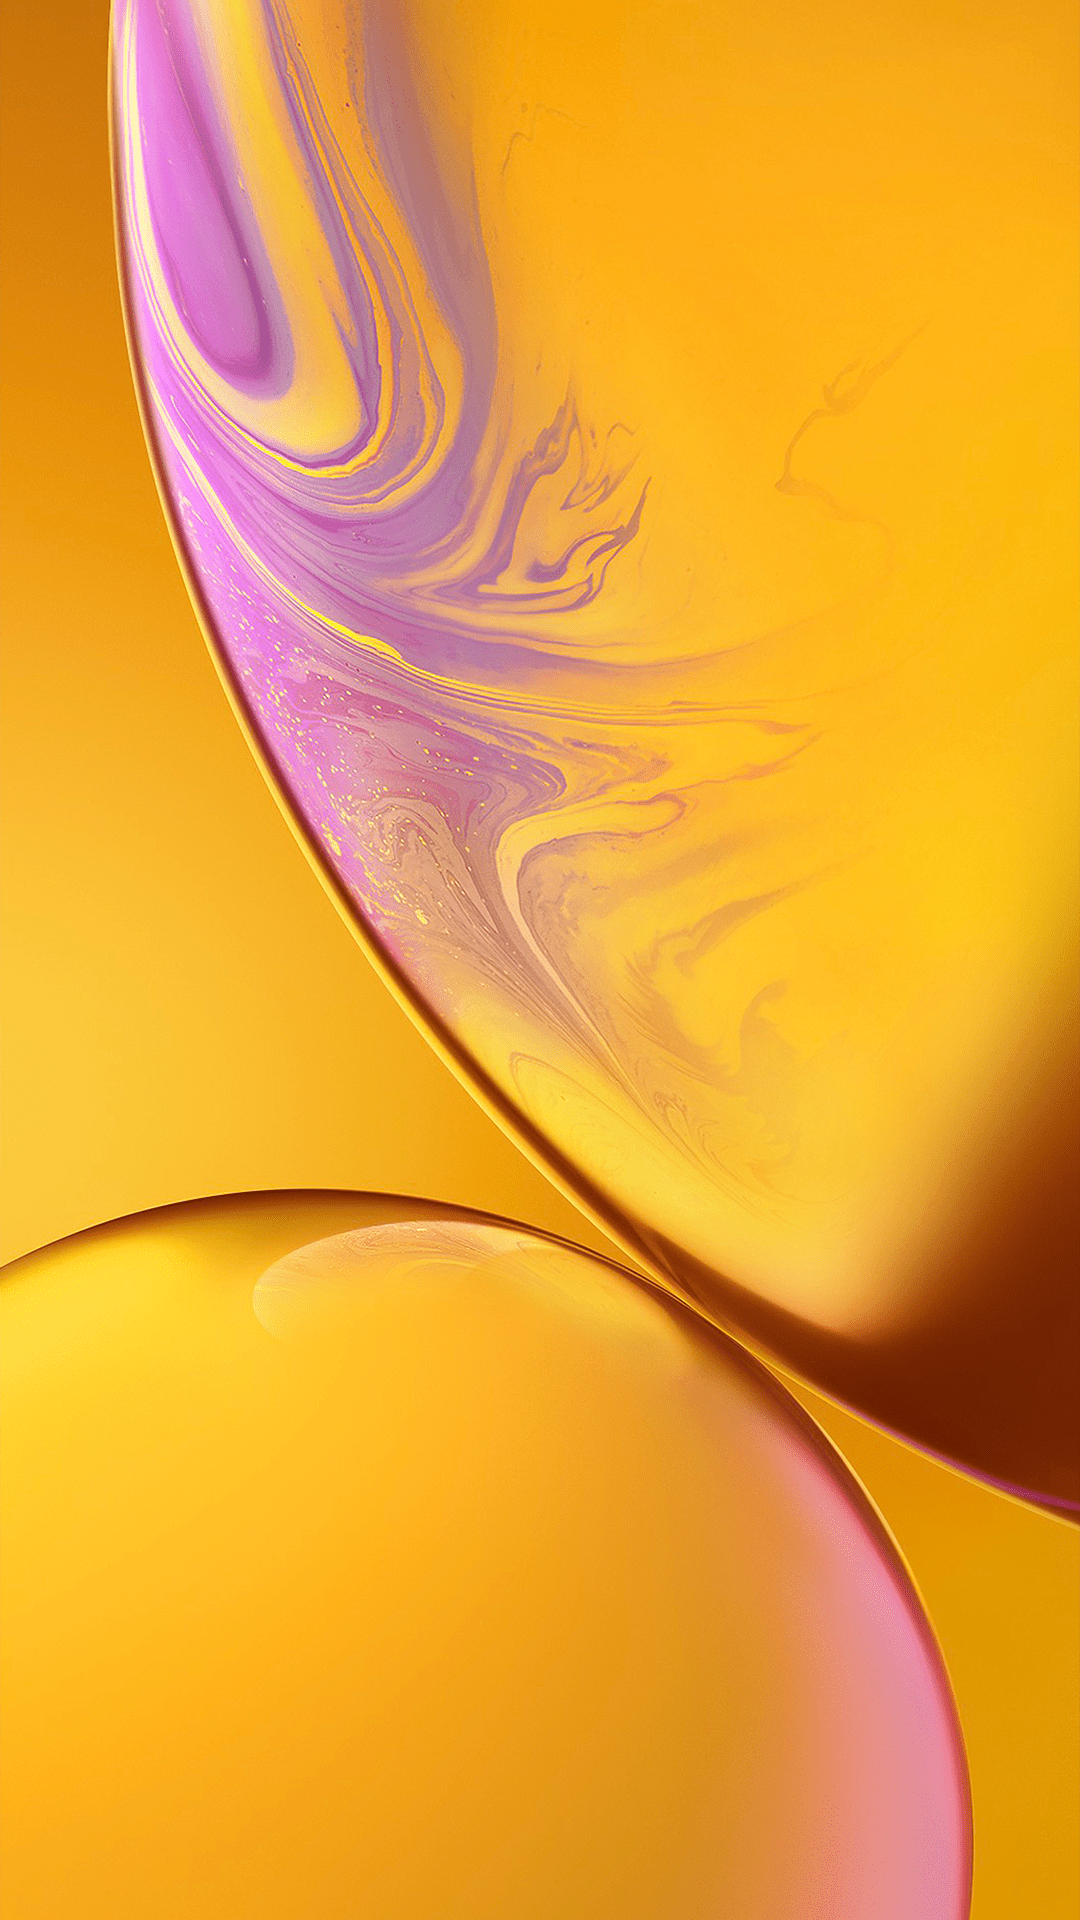 Exclusive Download Iphone Xr Wallpapers Other Iphone 2018